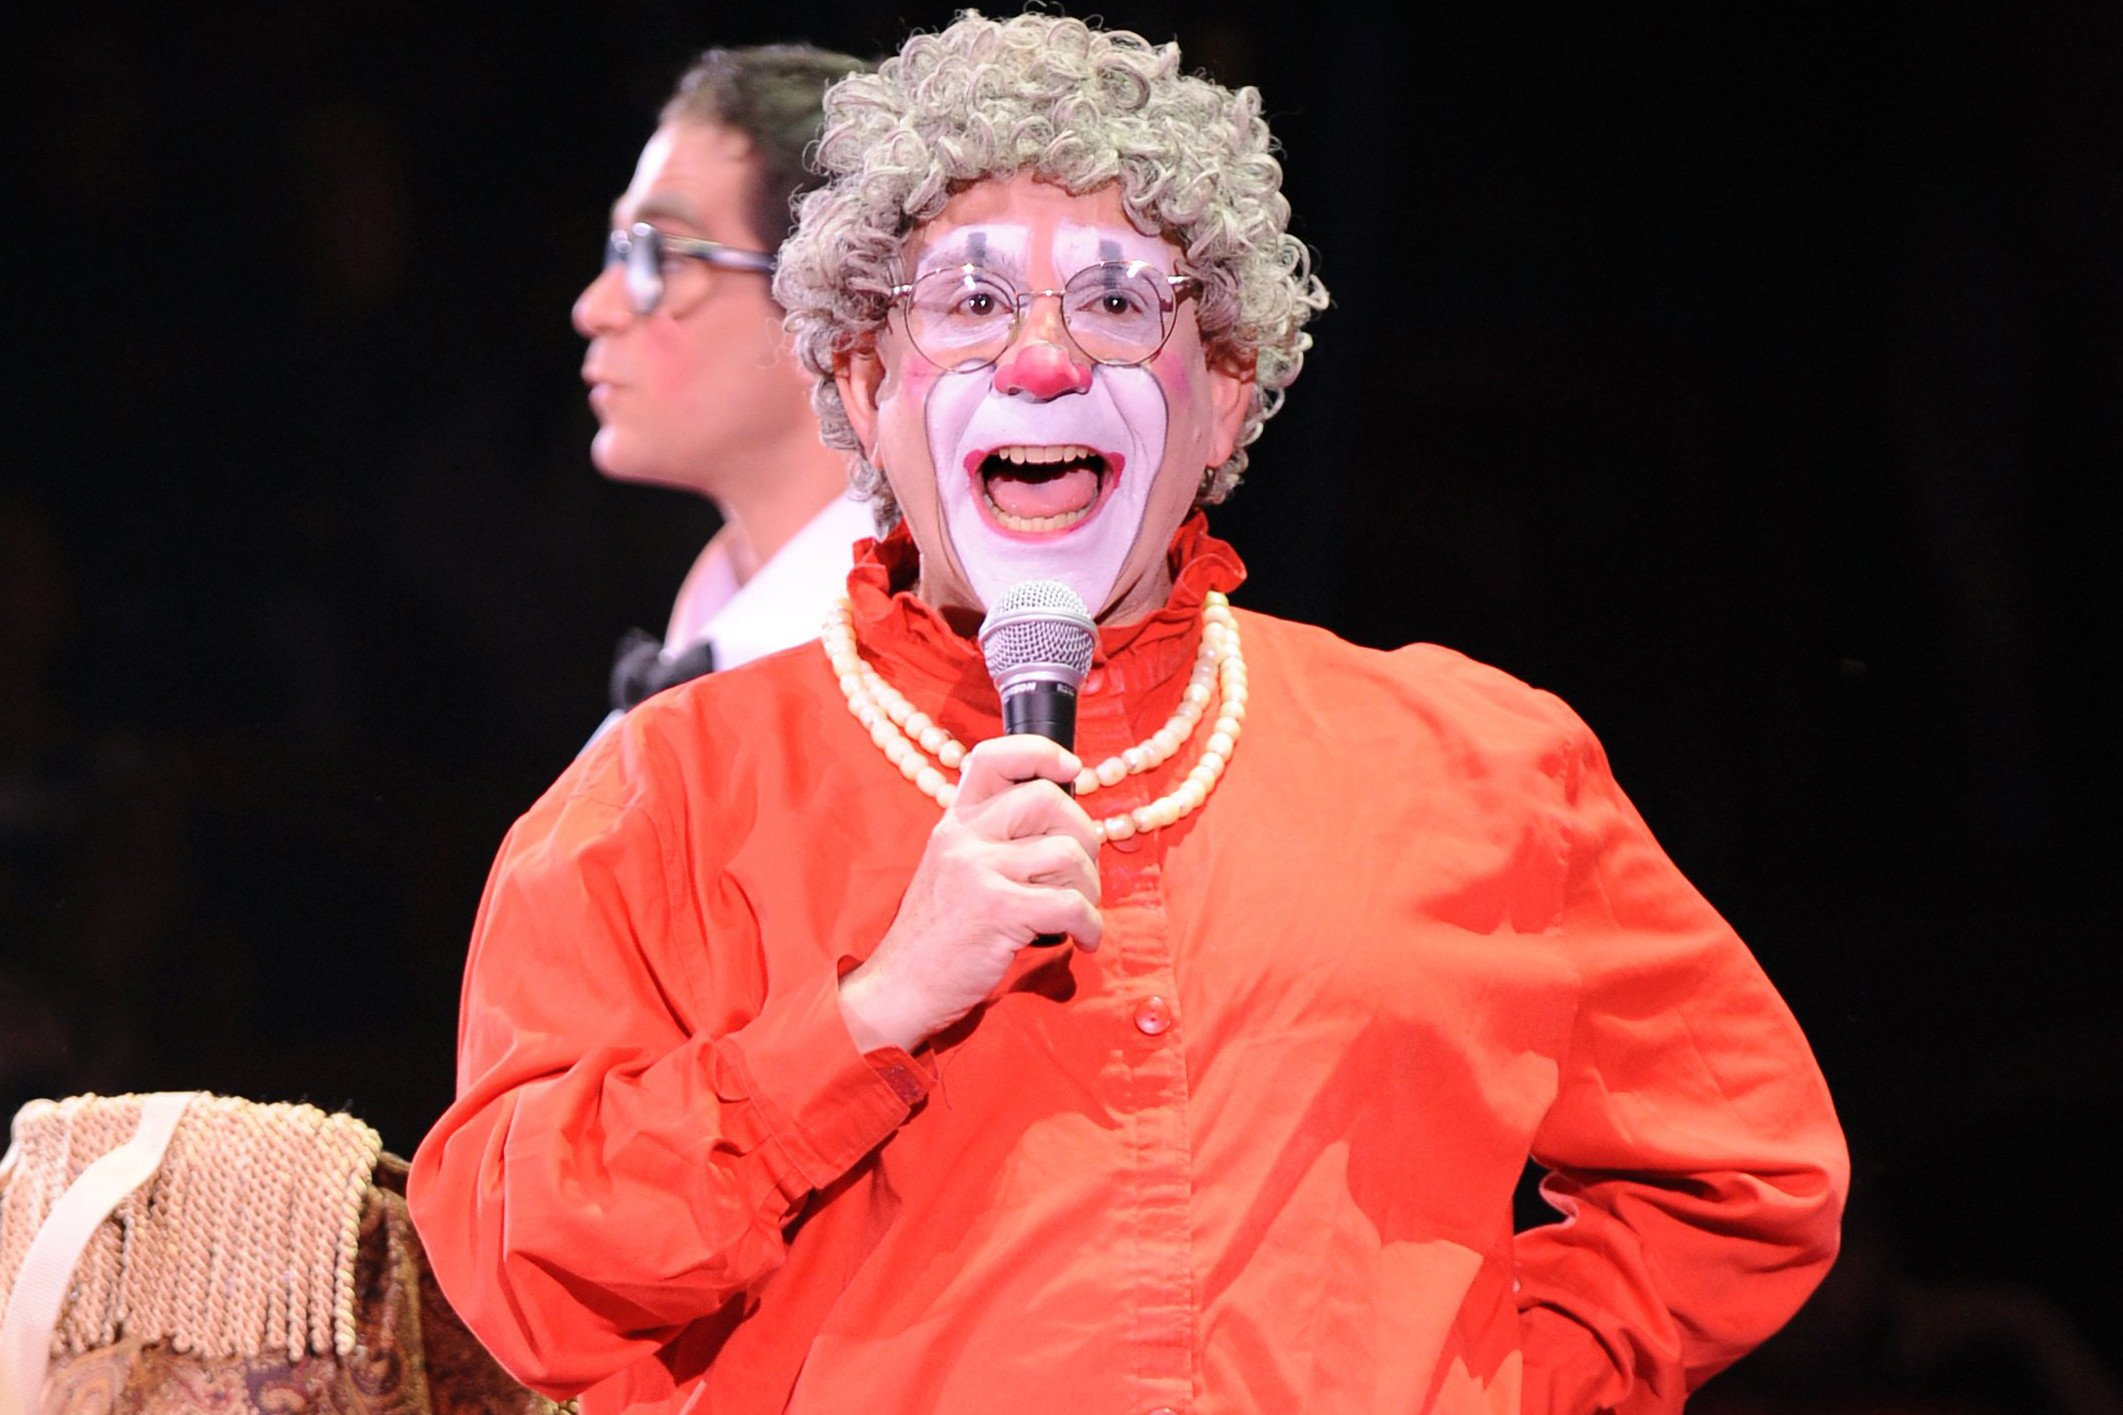 Famed Big Apple Circus clown accused of coercing teen into taking sexual photos